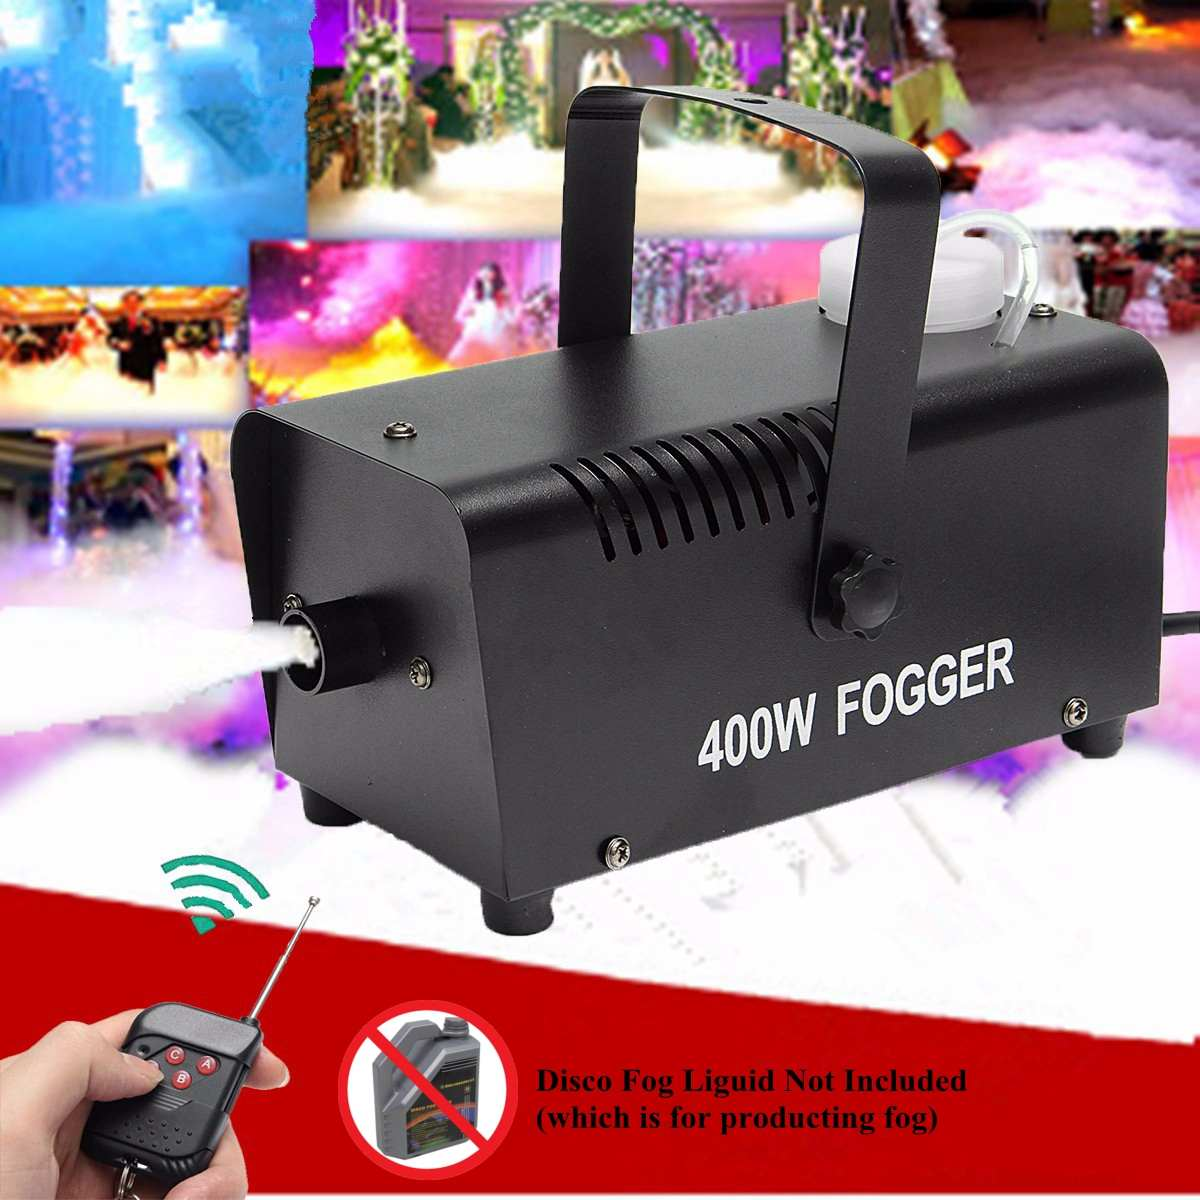 400W Fog Smoke Mist Machine Stage Effect Disco DJ Party Christmas with Remote Control400W Fog Smoke Mist Machine Stage Effect Disco DJ Party Christmas with Remote Control